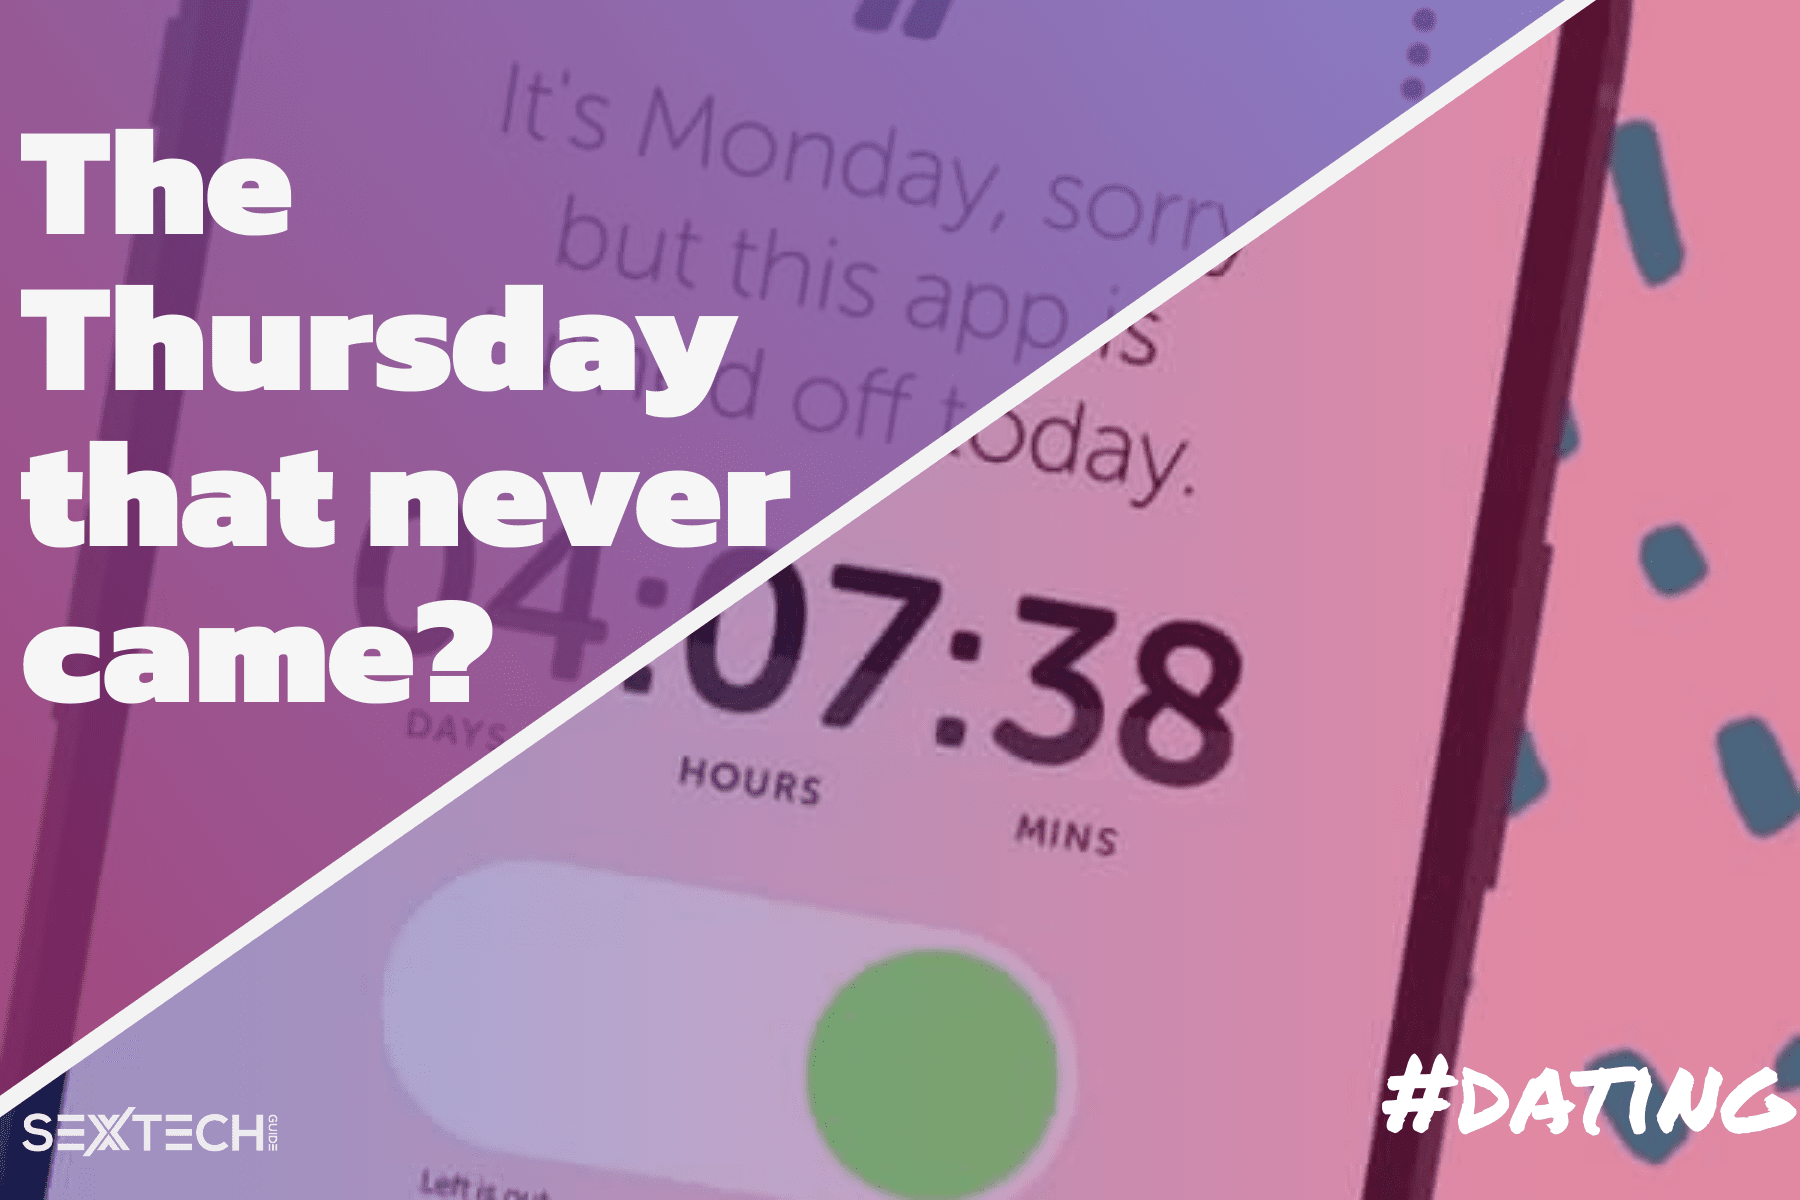 Thursday - One day a week dating